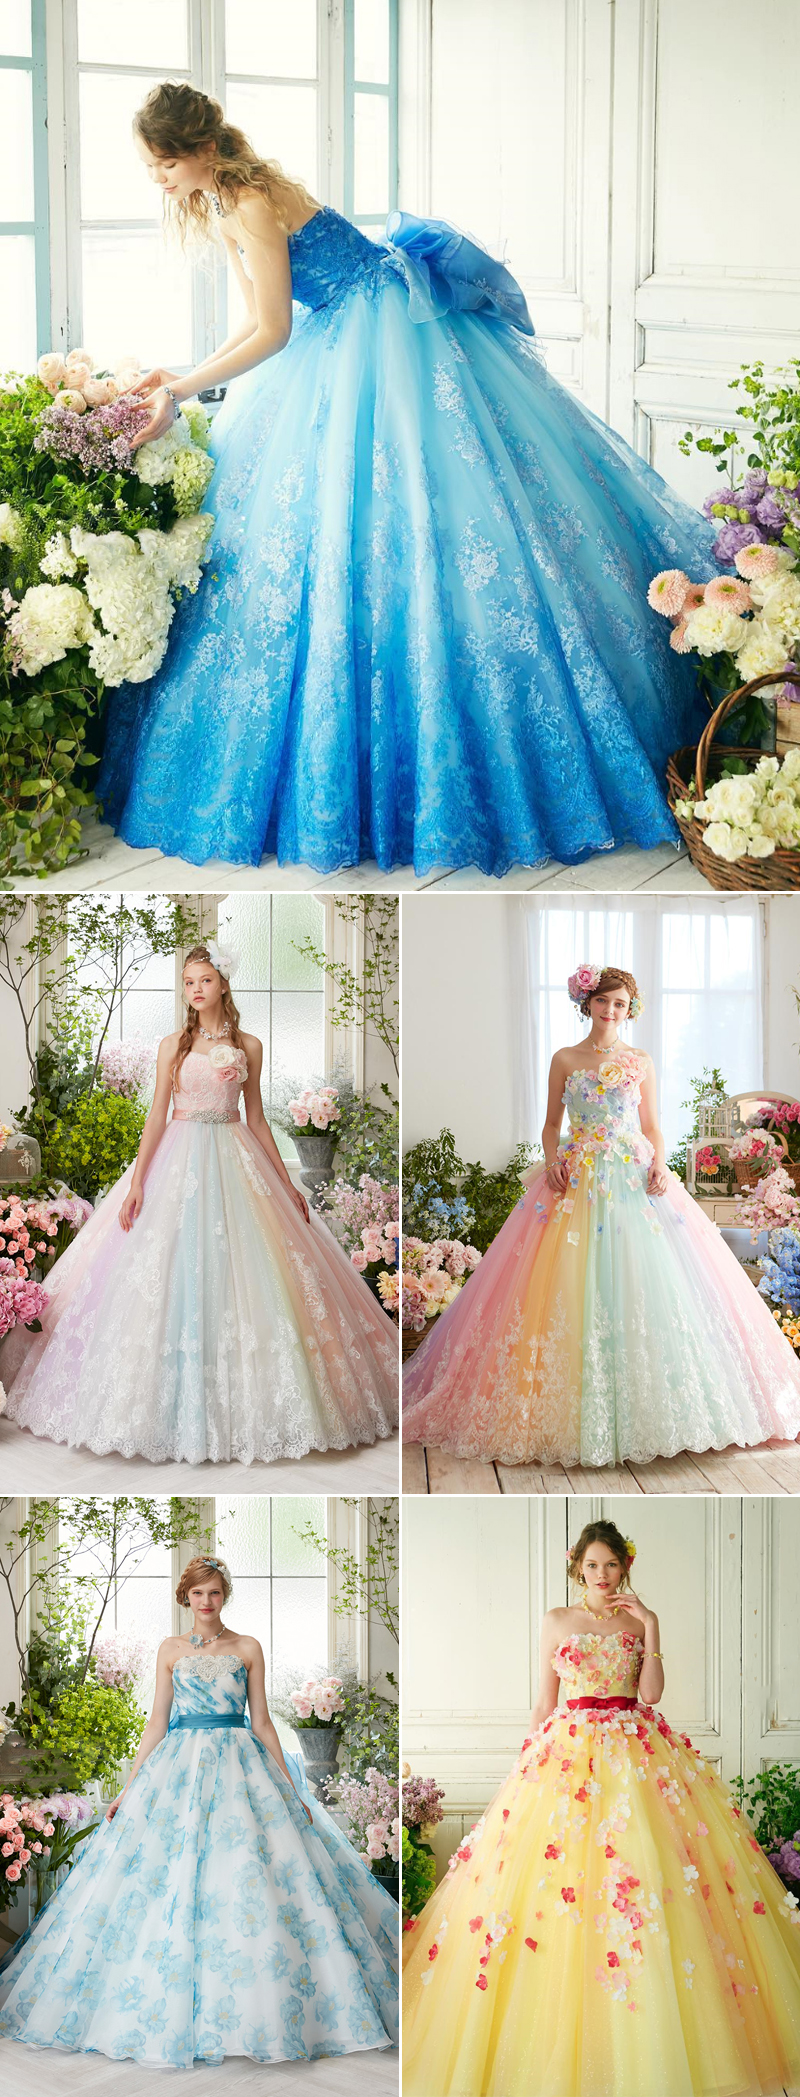 fairytale03-nicolecollection